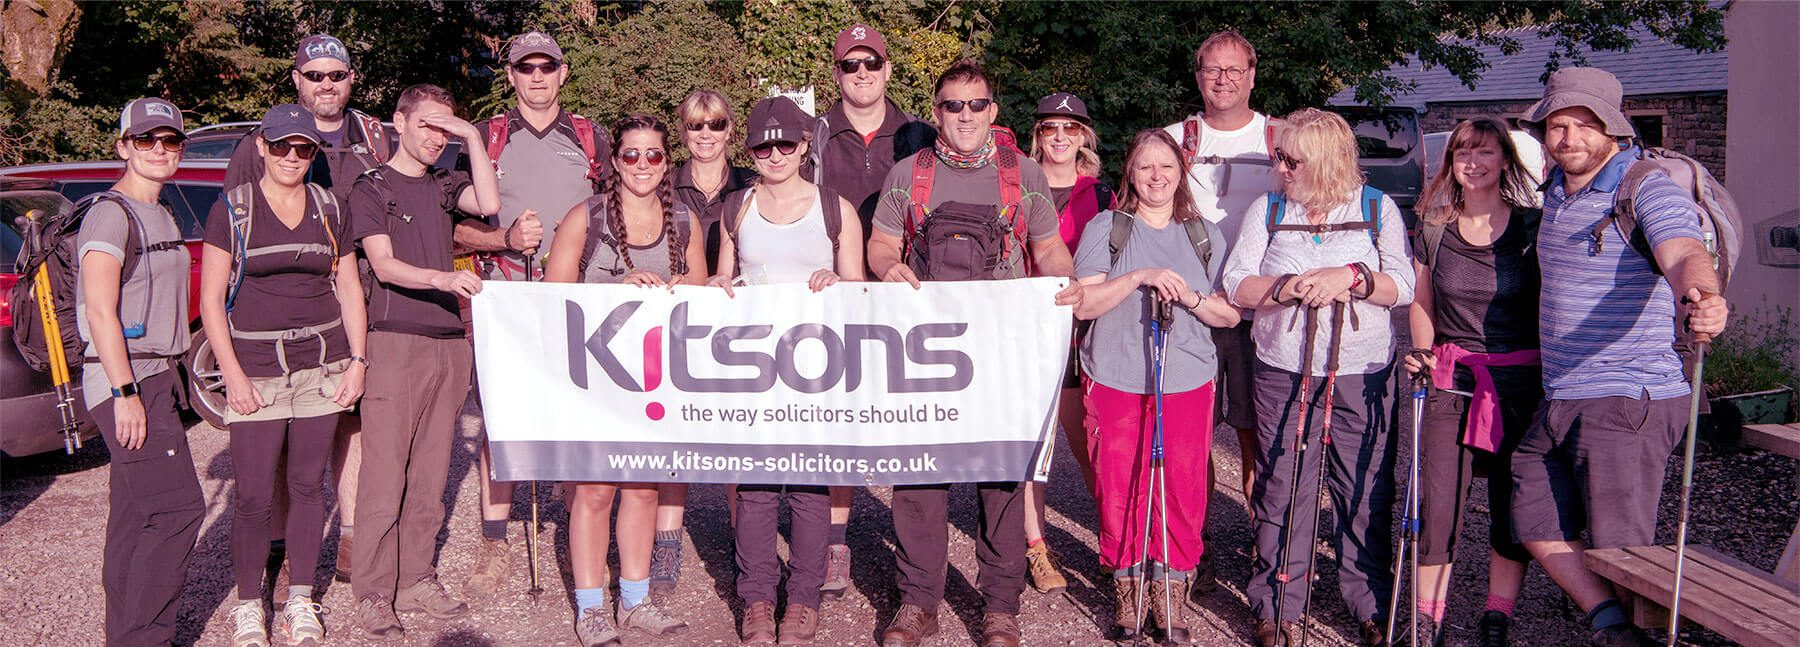 Kitsons Solicitors - Careers